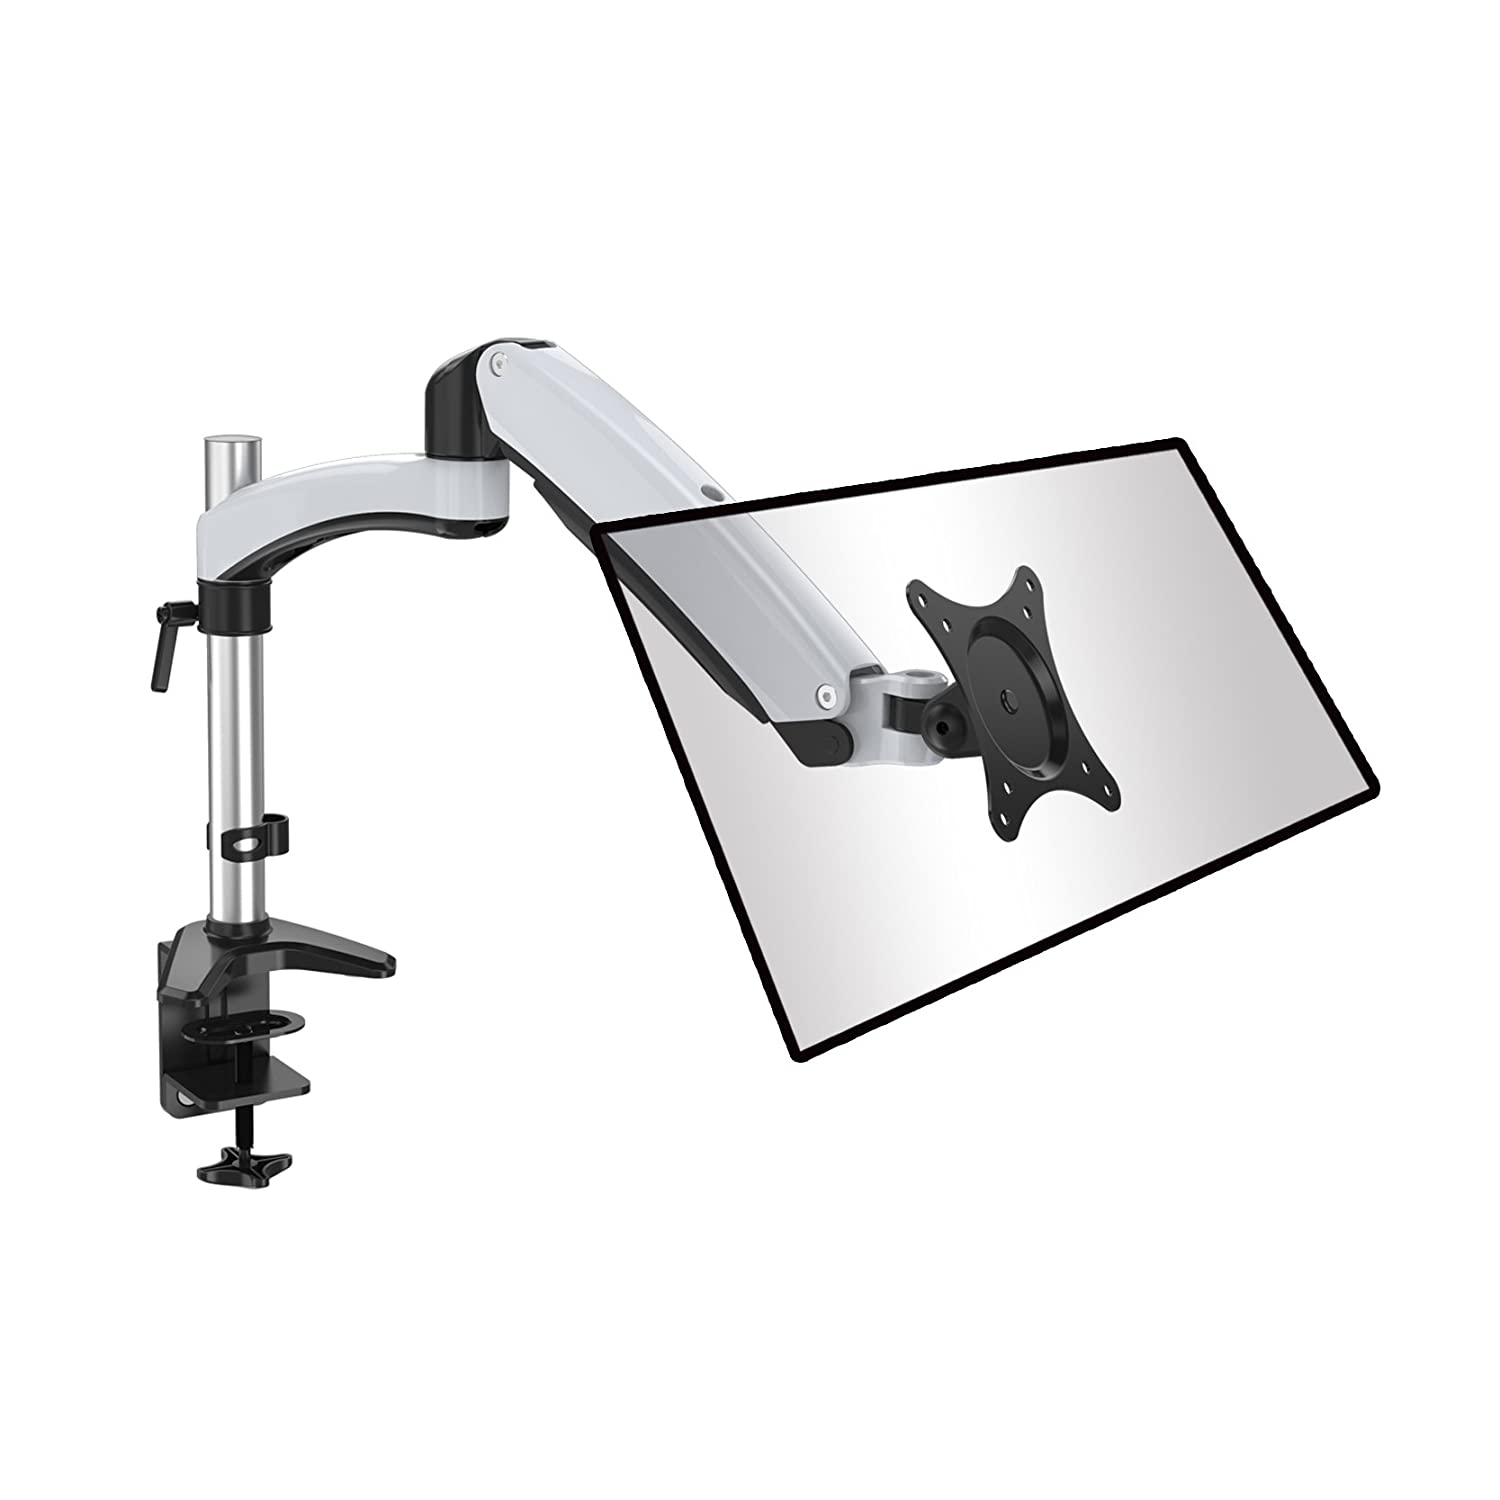 Fully Adjustable Single LCD Monitor Arm Desk Mount/Stand for Monitors up to 27, Both Desk clamp and Grommet mounting DS112D (Single) ShoppingAll